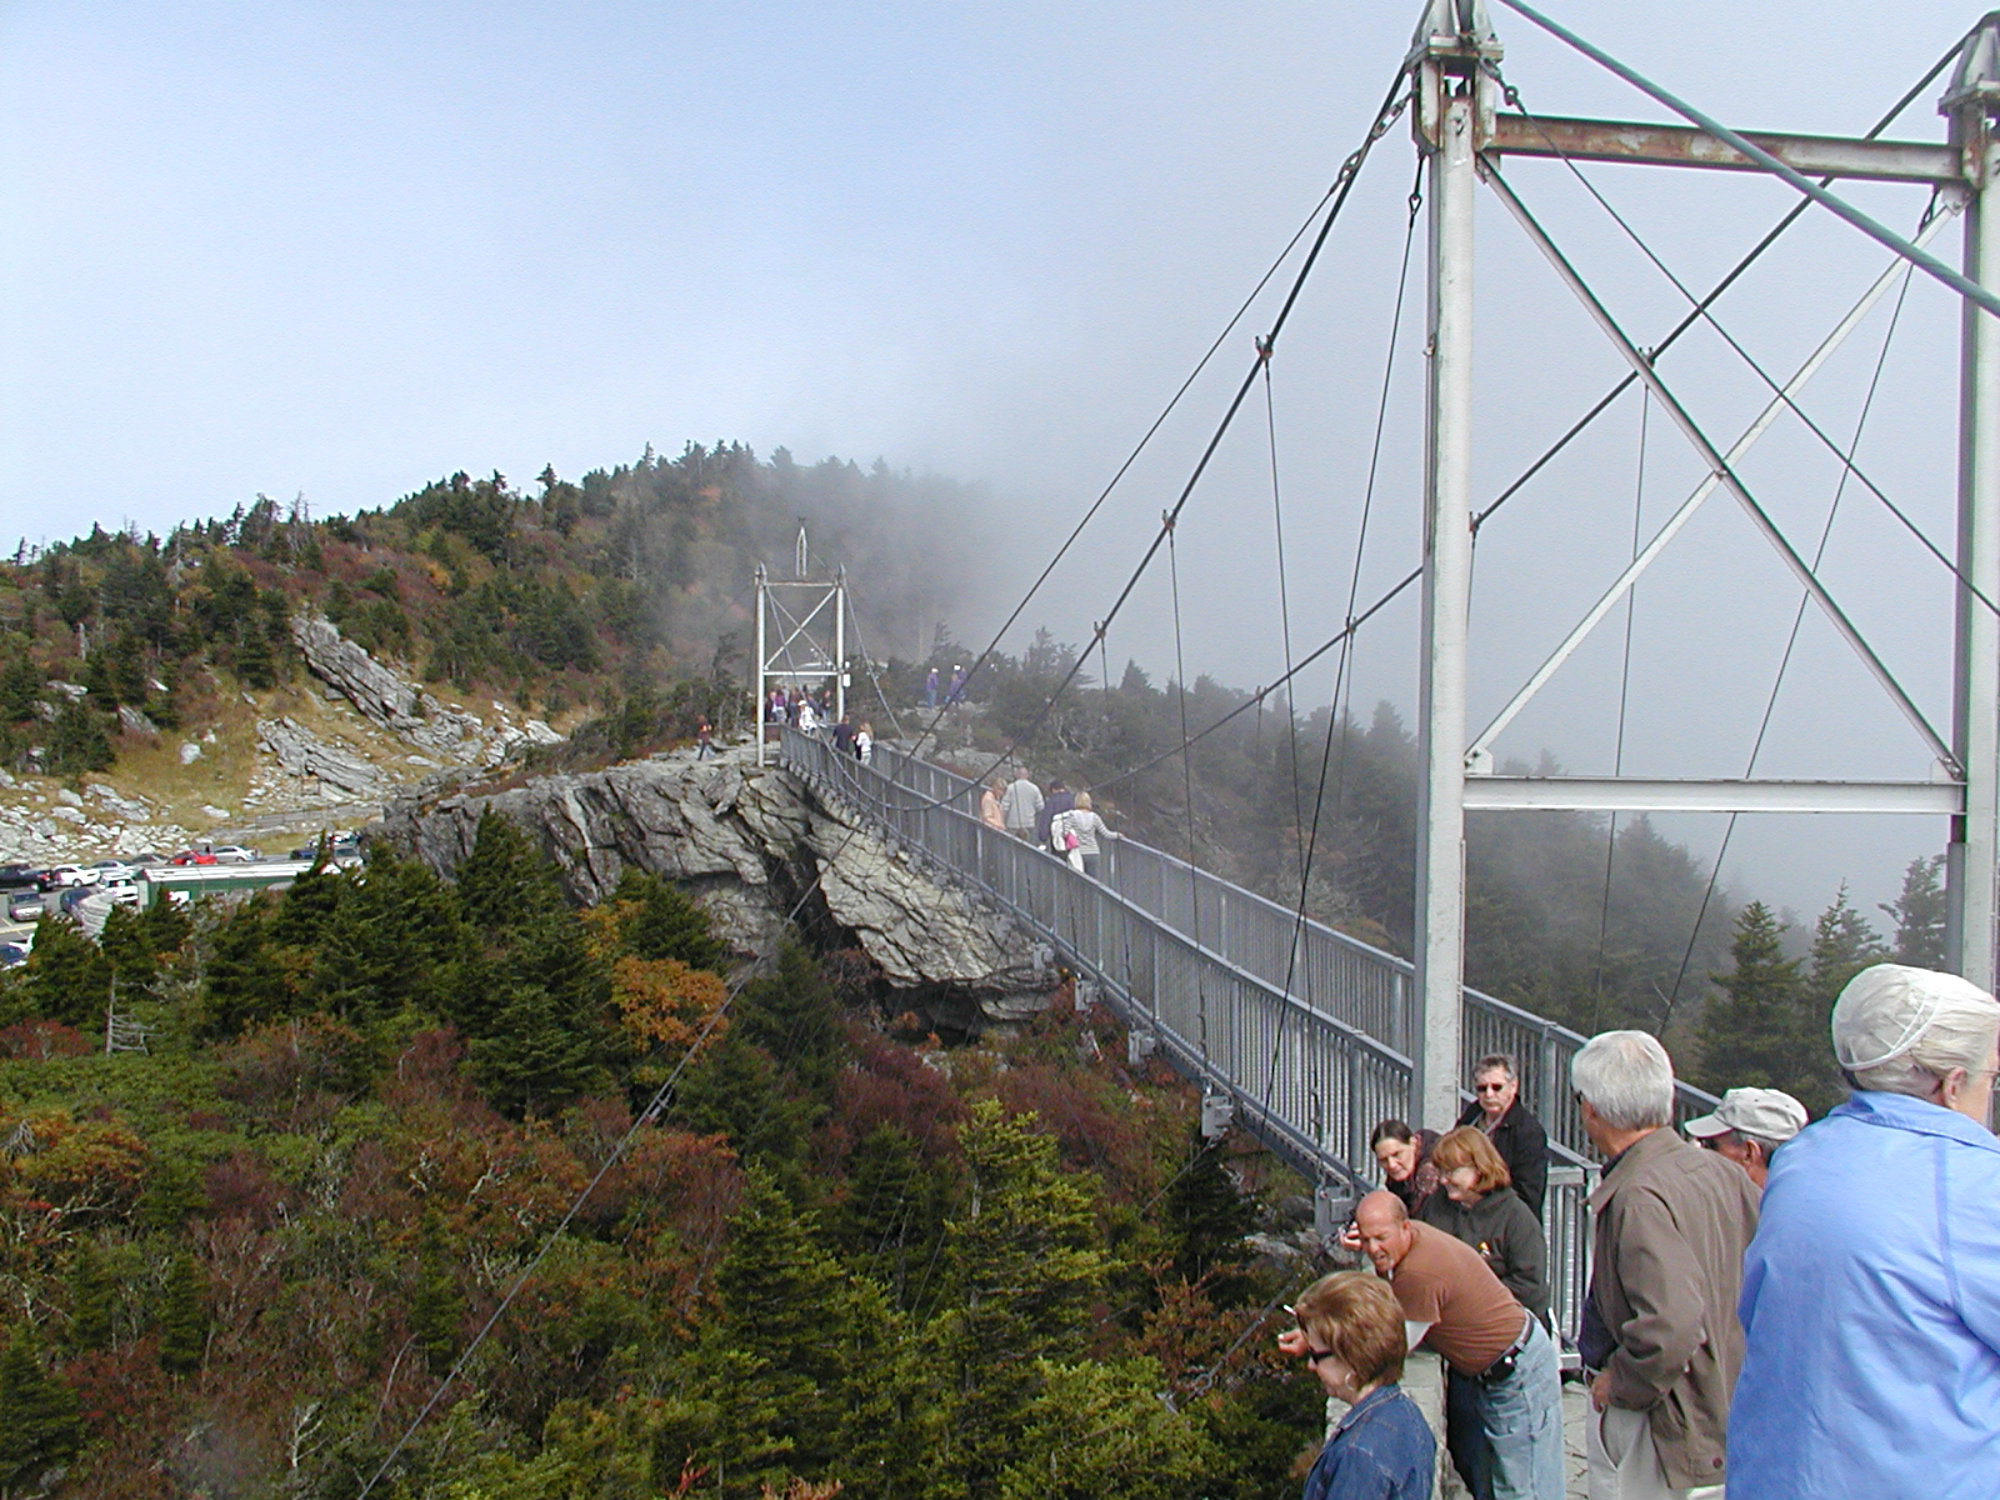 Long suspension bridge leading to a rugged hillside covered in trees